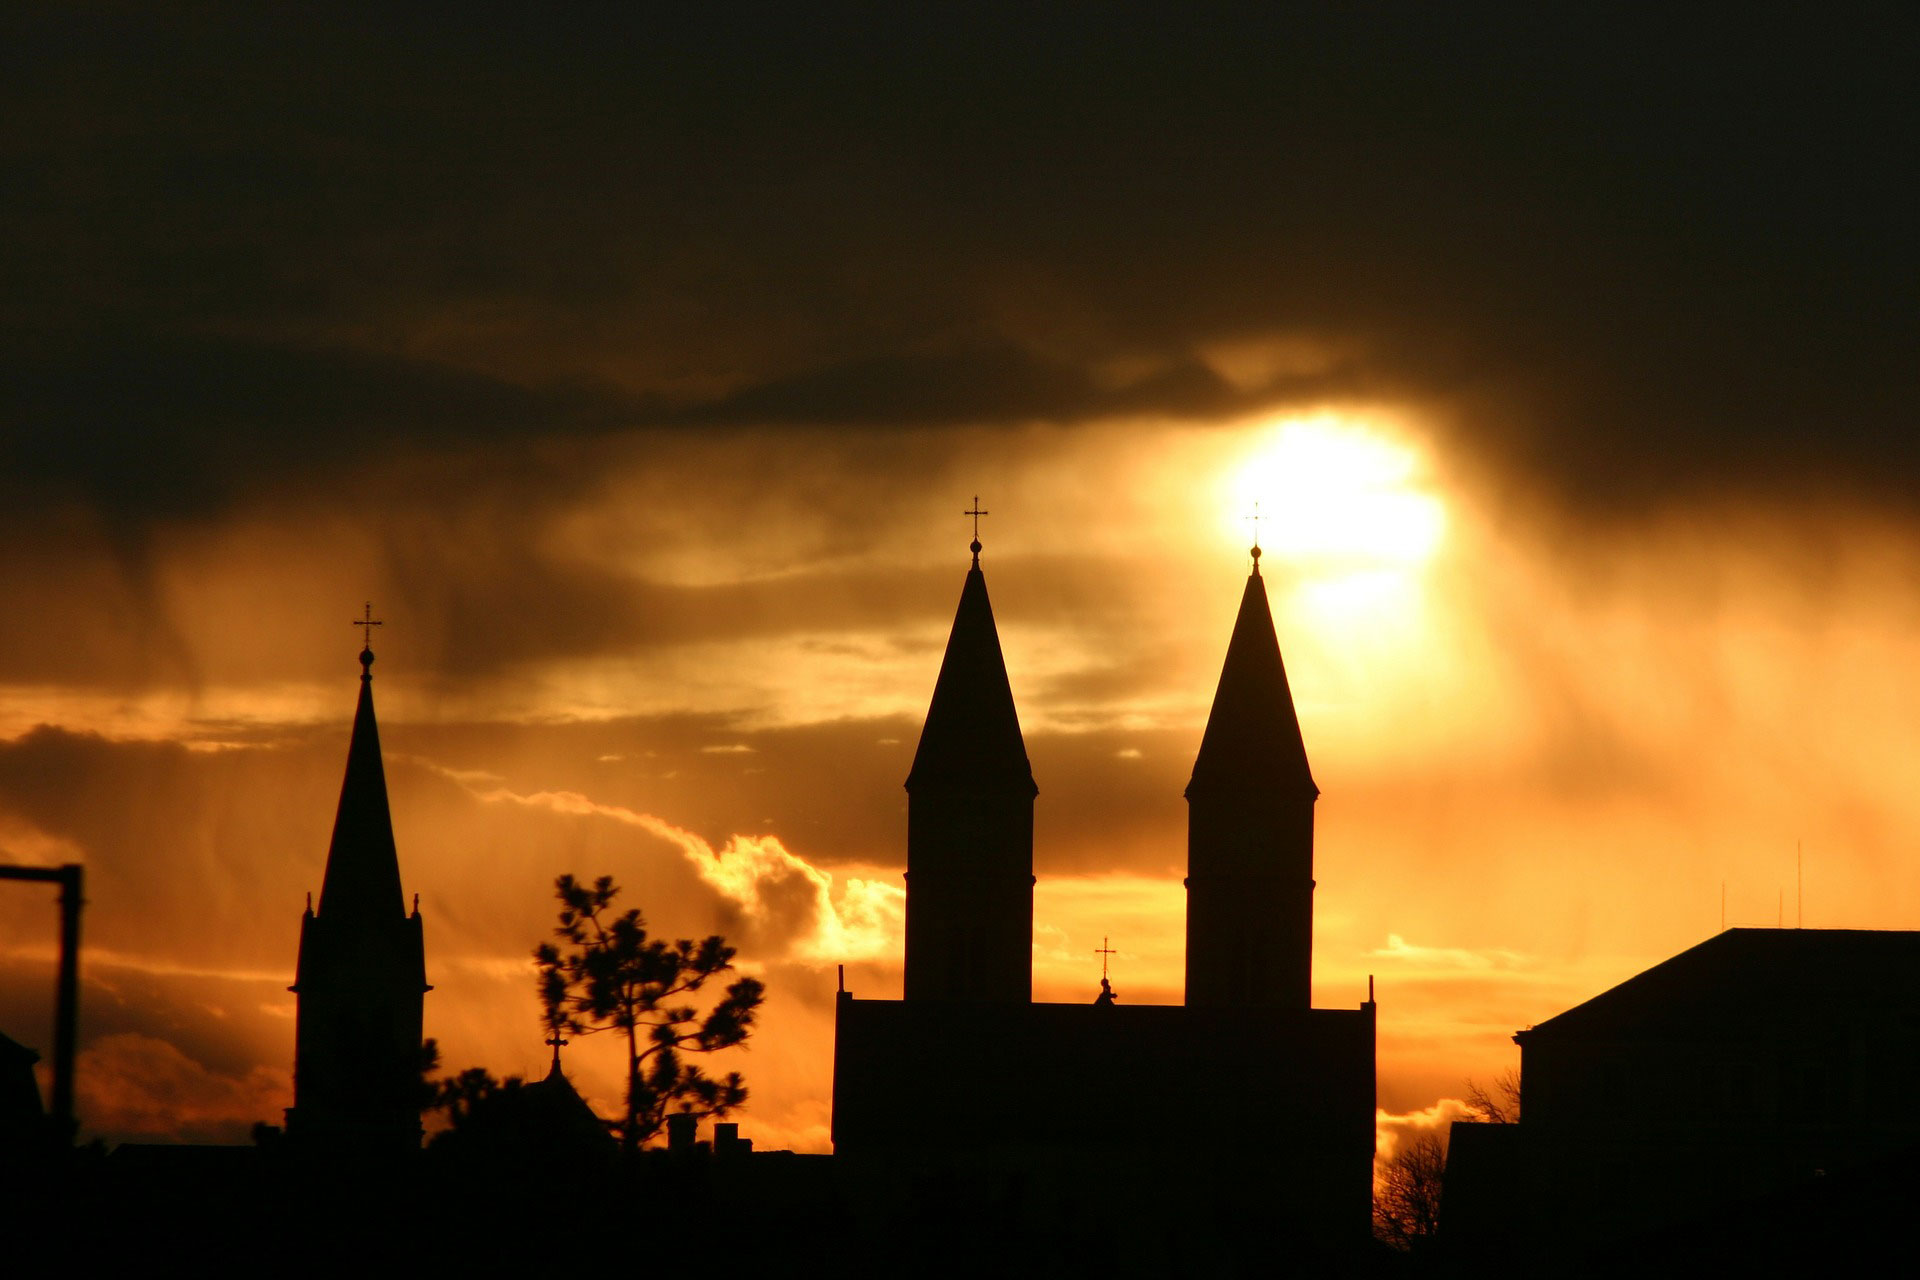 How The Churches Help In Inculcating The Sense Of A Community?